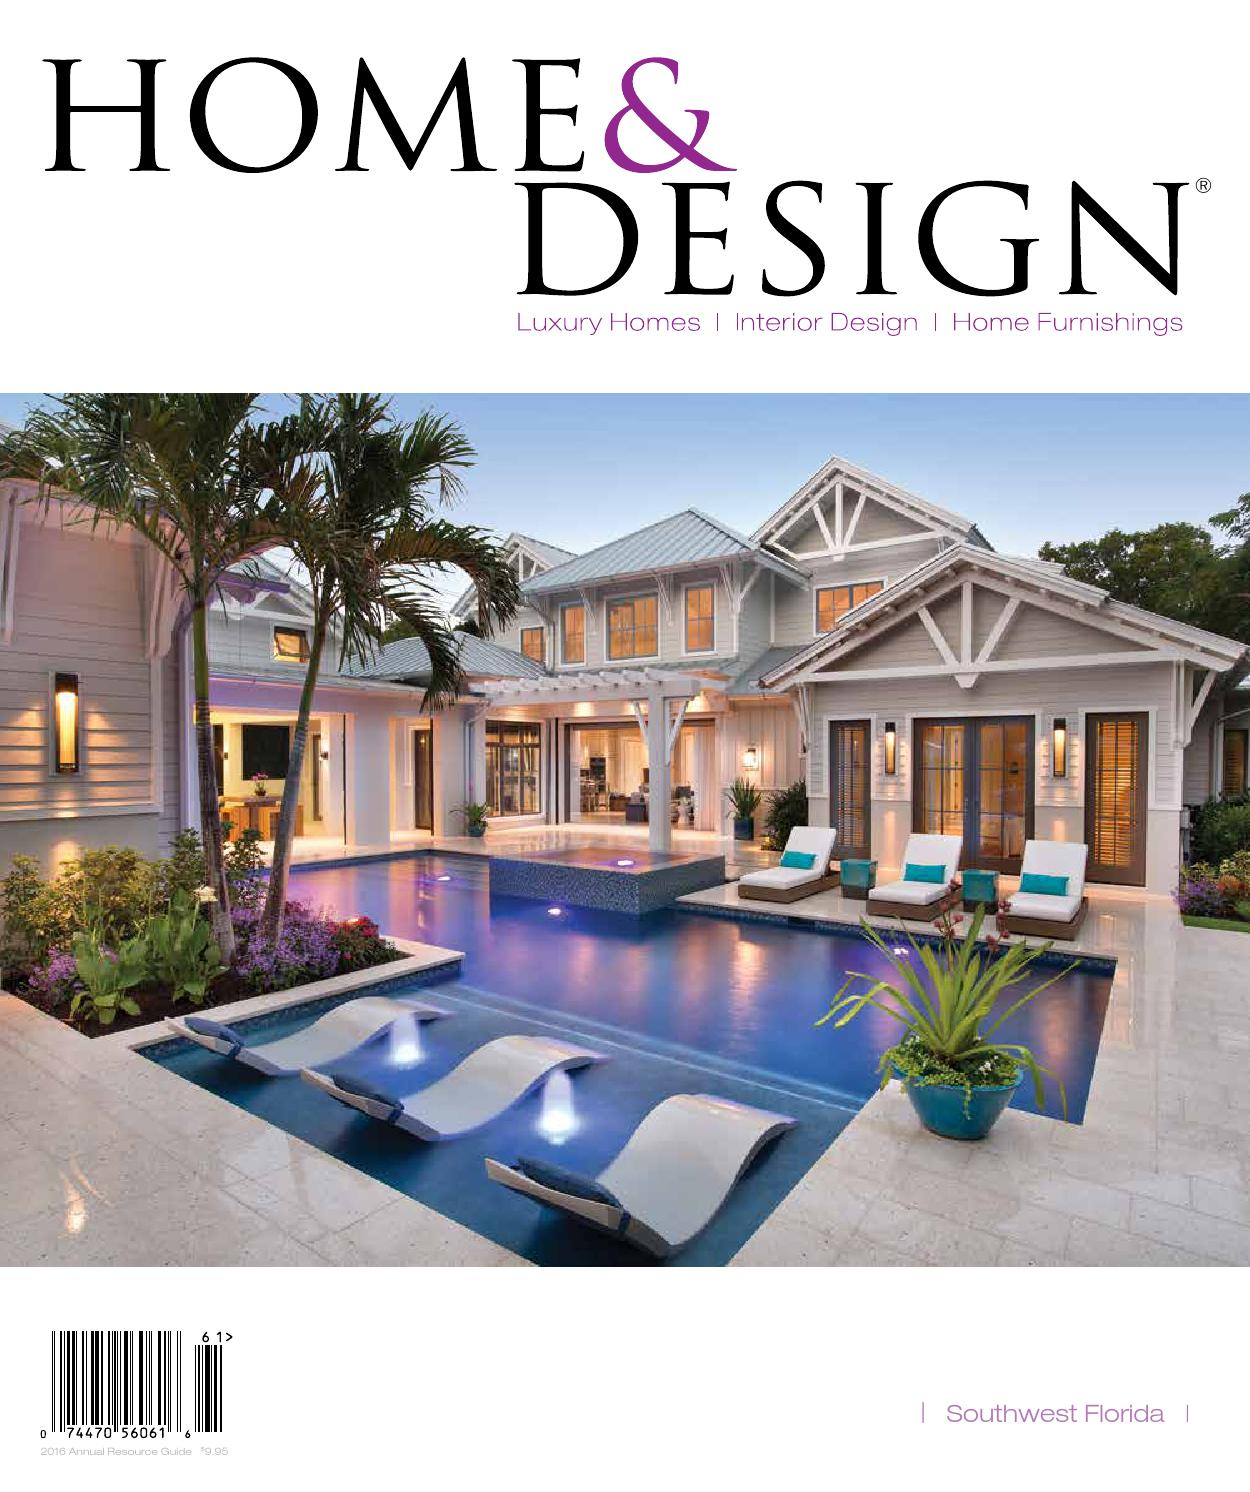 Home Design Magazine east coast home design cover Home Design Magazine Annual Resource Guide 2016 Southwest Florida Edition By Anthony Spano Issuu